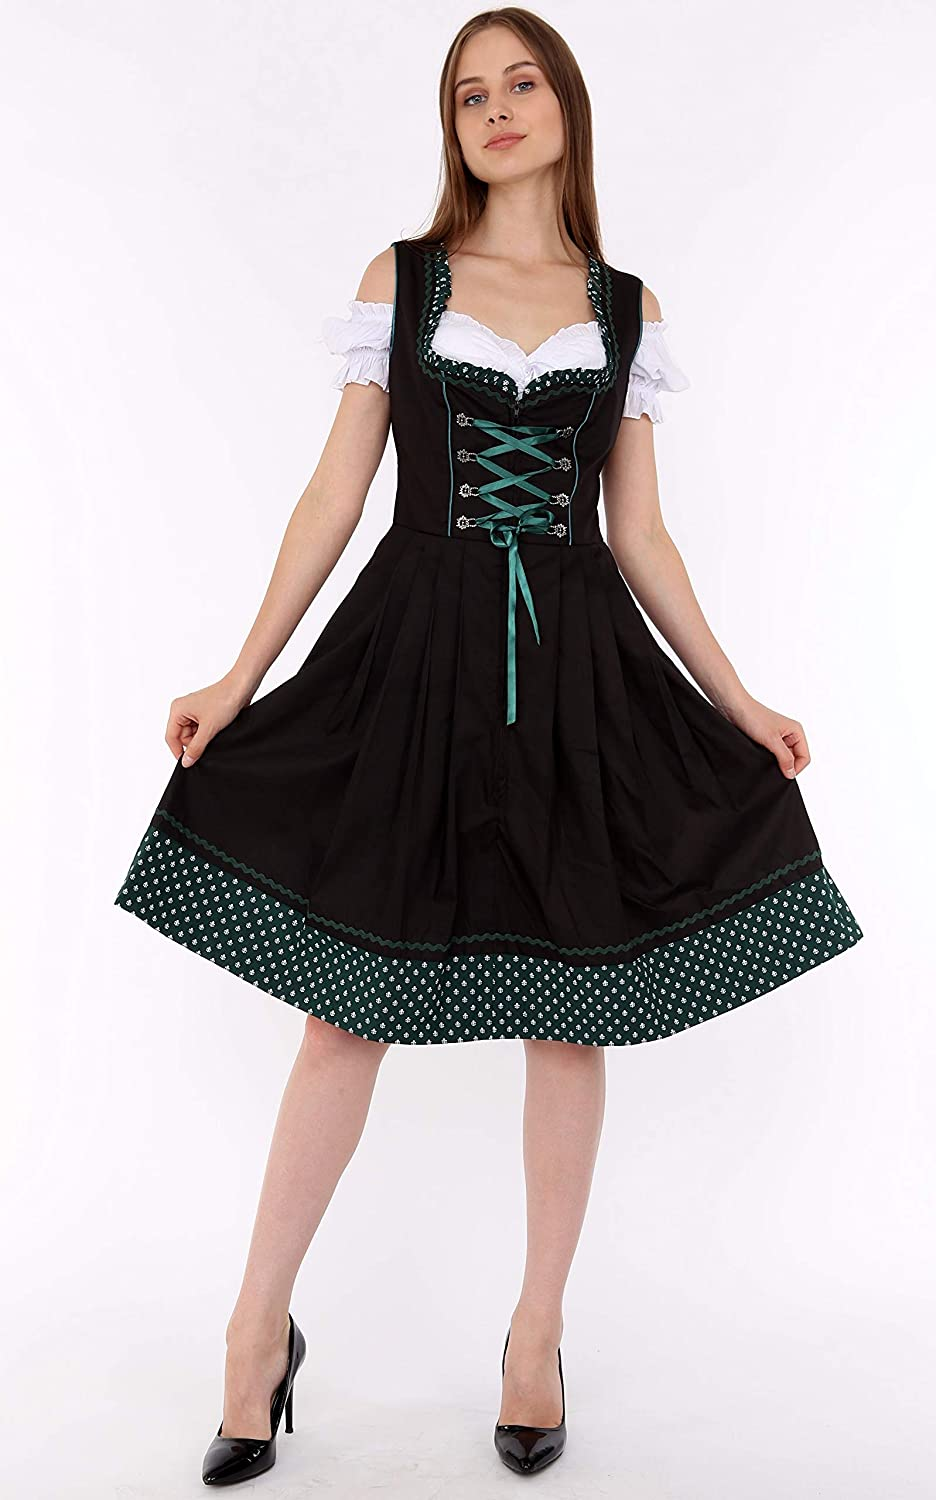 Ladies Traditional Green Brown Deluxe Oktoberfest Bavarian Dirndl Dress Costume